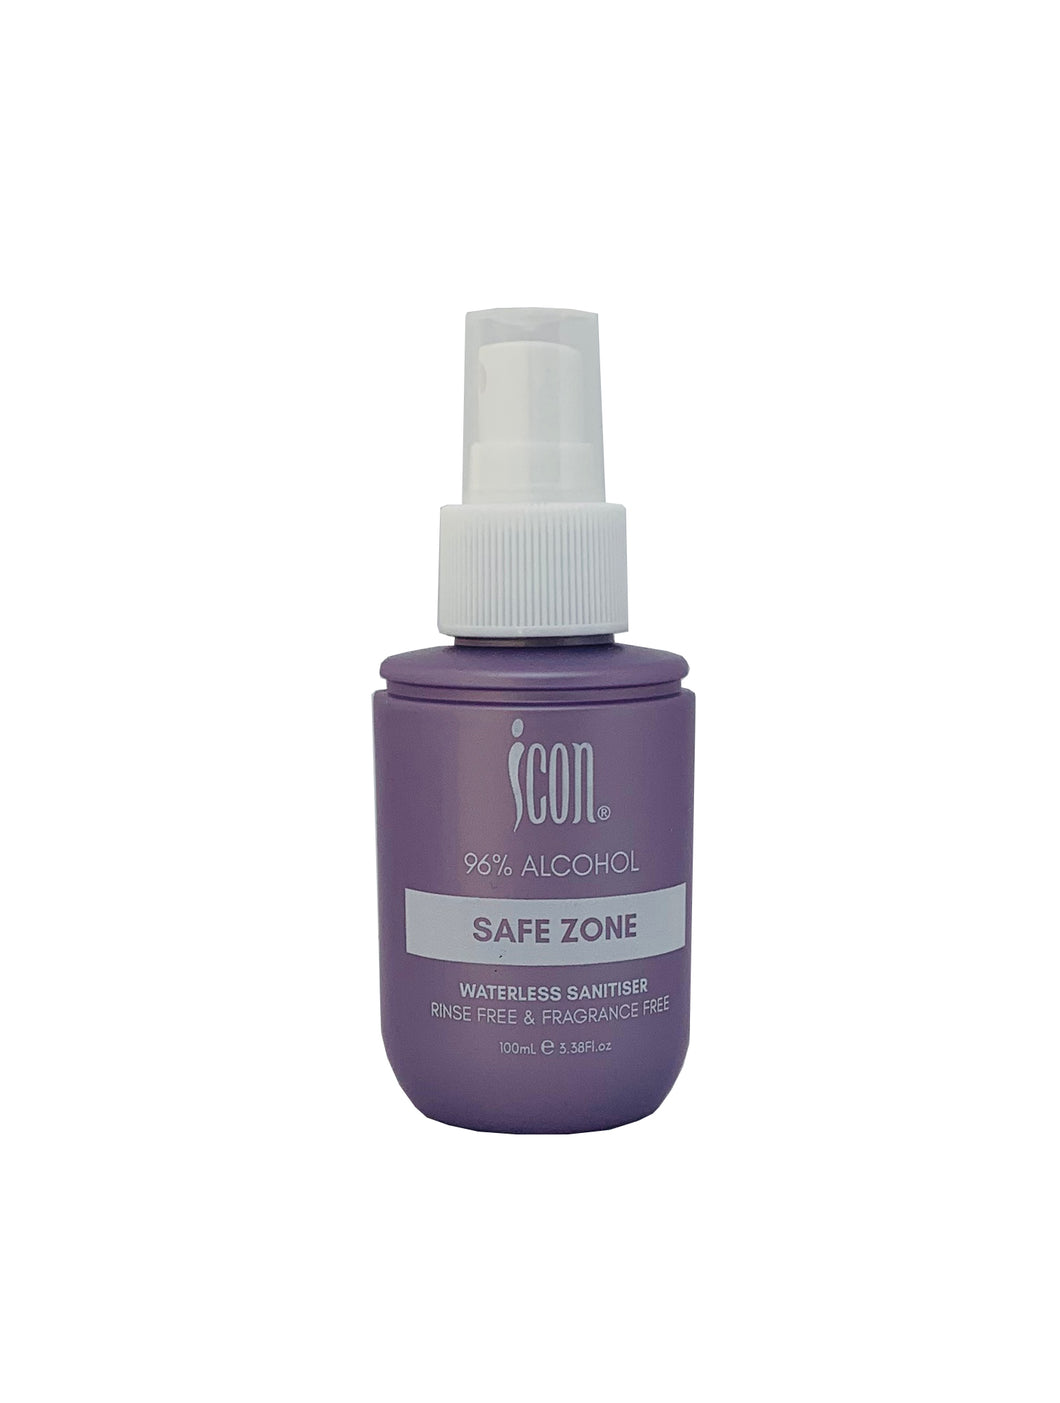 Icon 96% Alcohol Hand Sanitiser 100ml